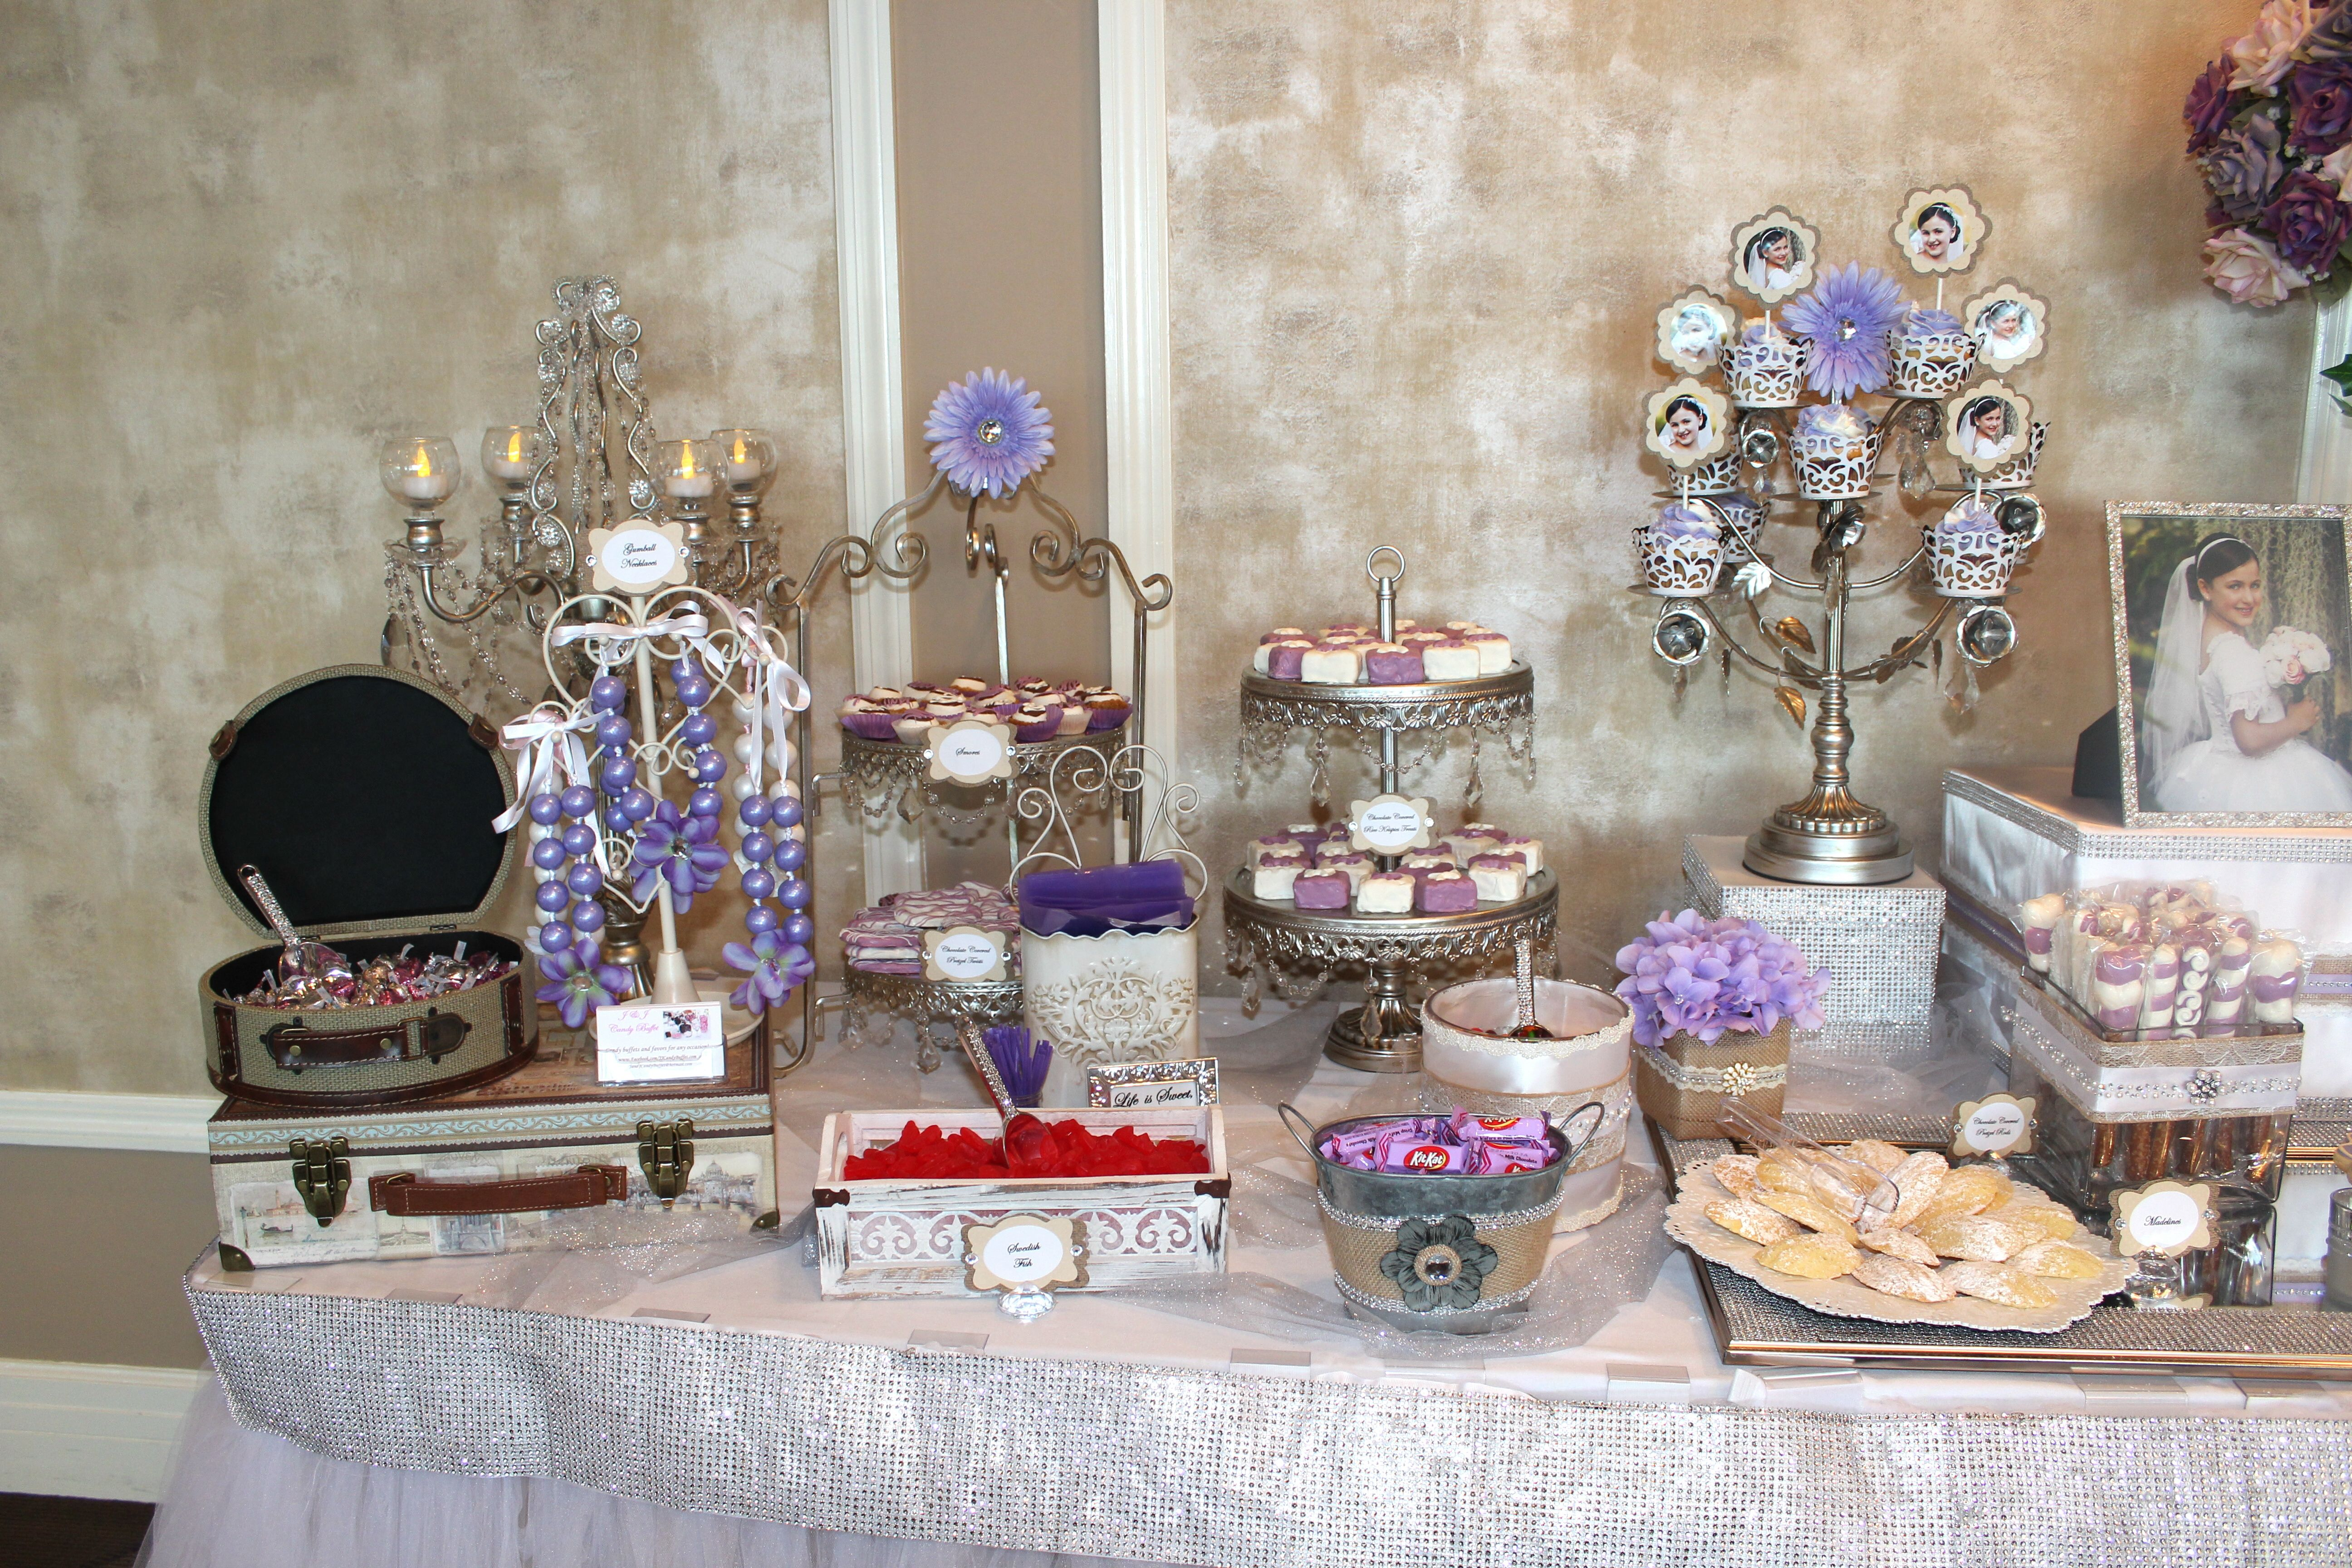 Vintage, dance themed candy table